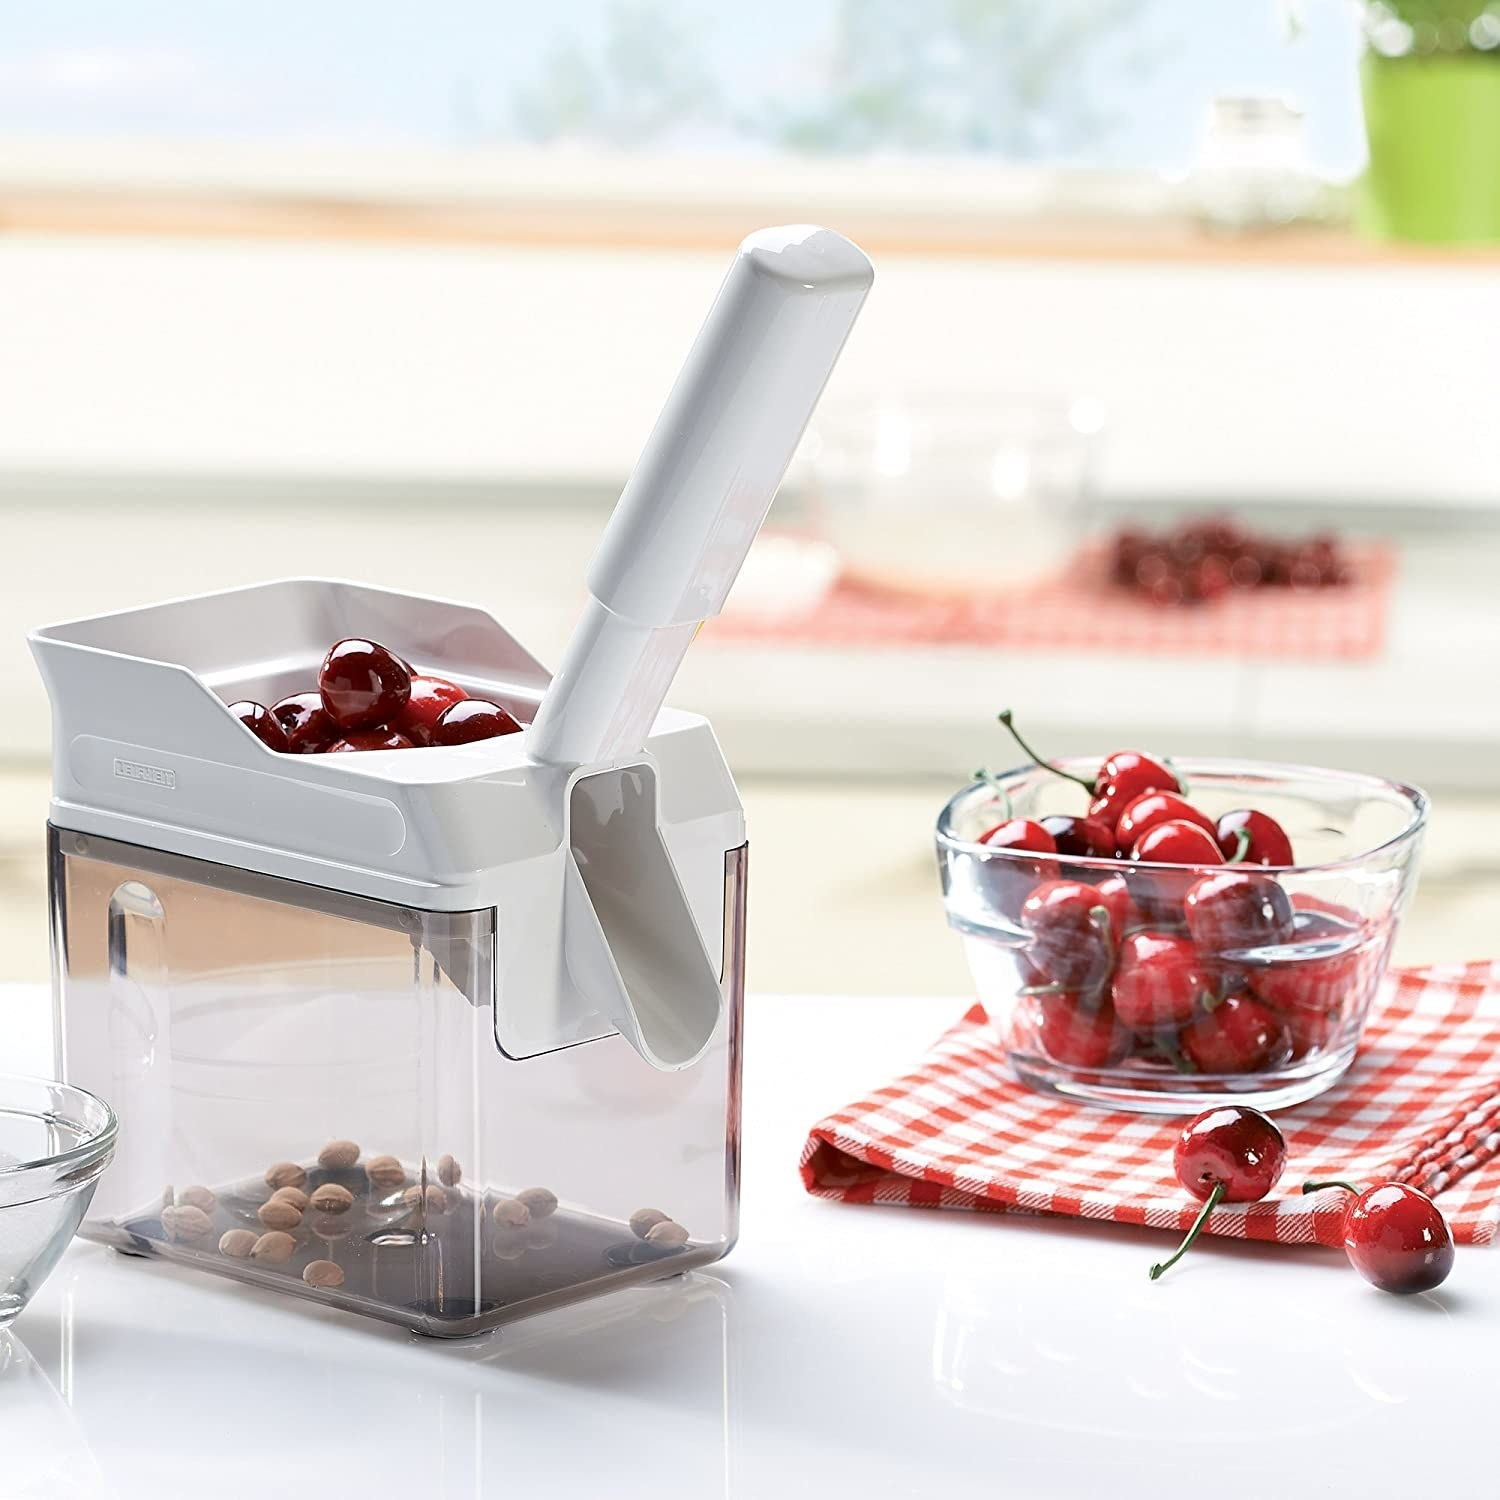 The cherry pitting machine on a kitchen counter next to a bowl of cherries